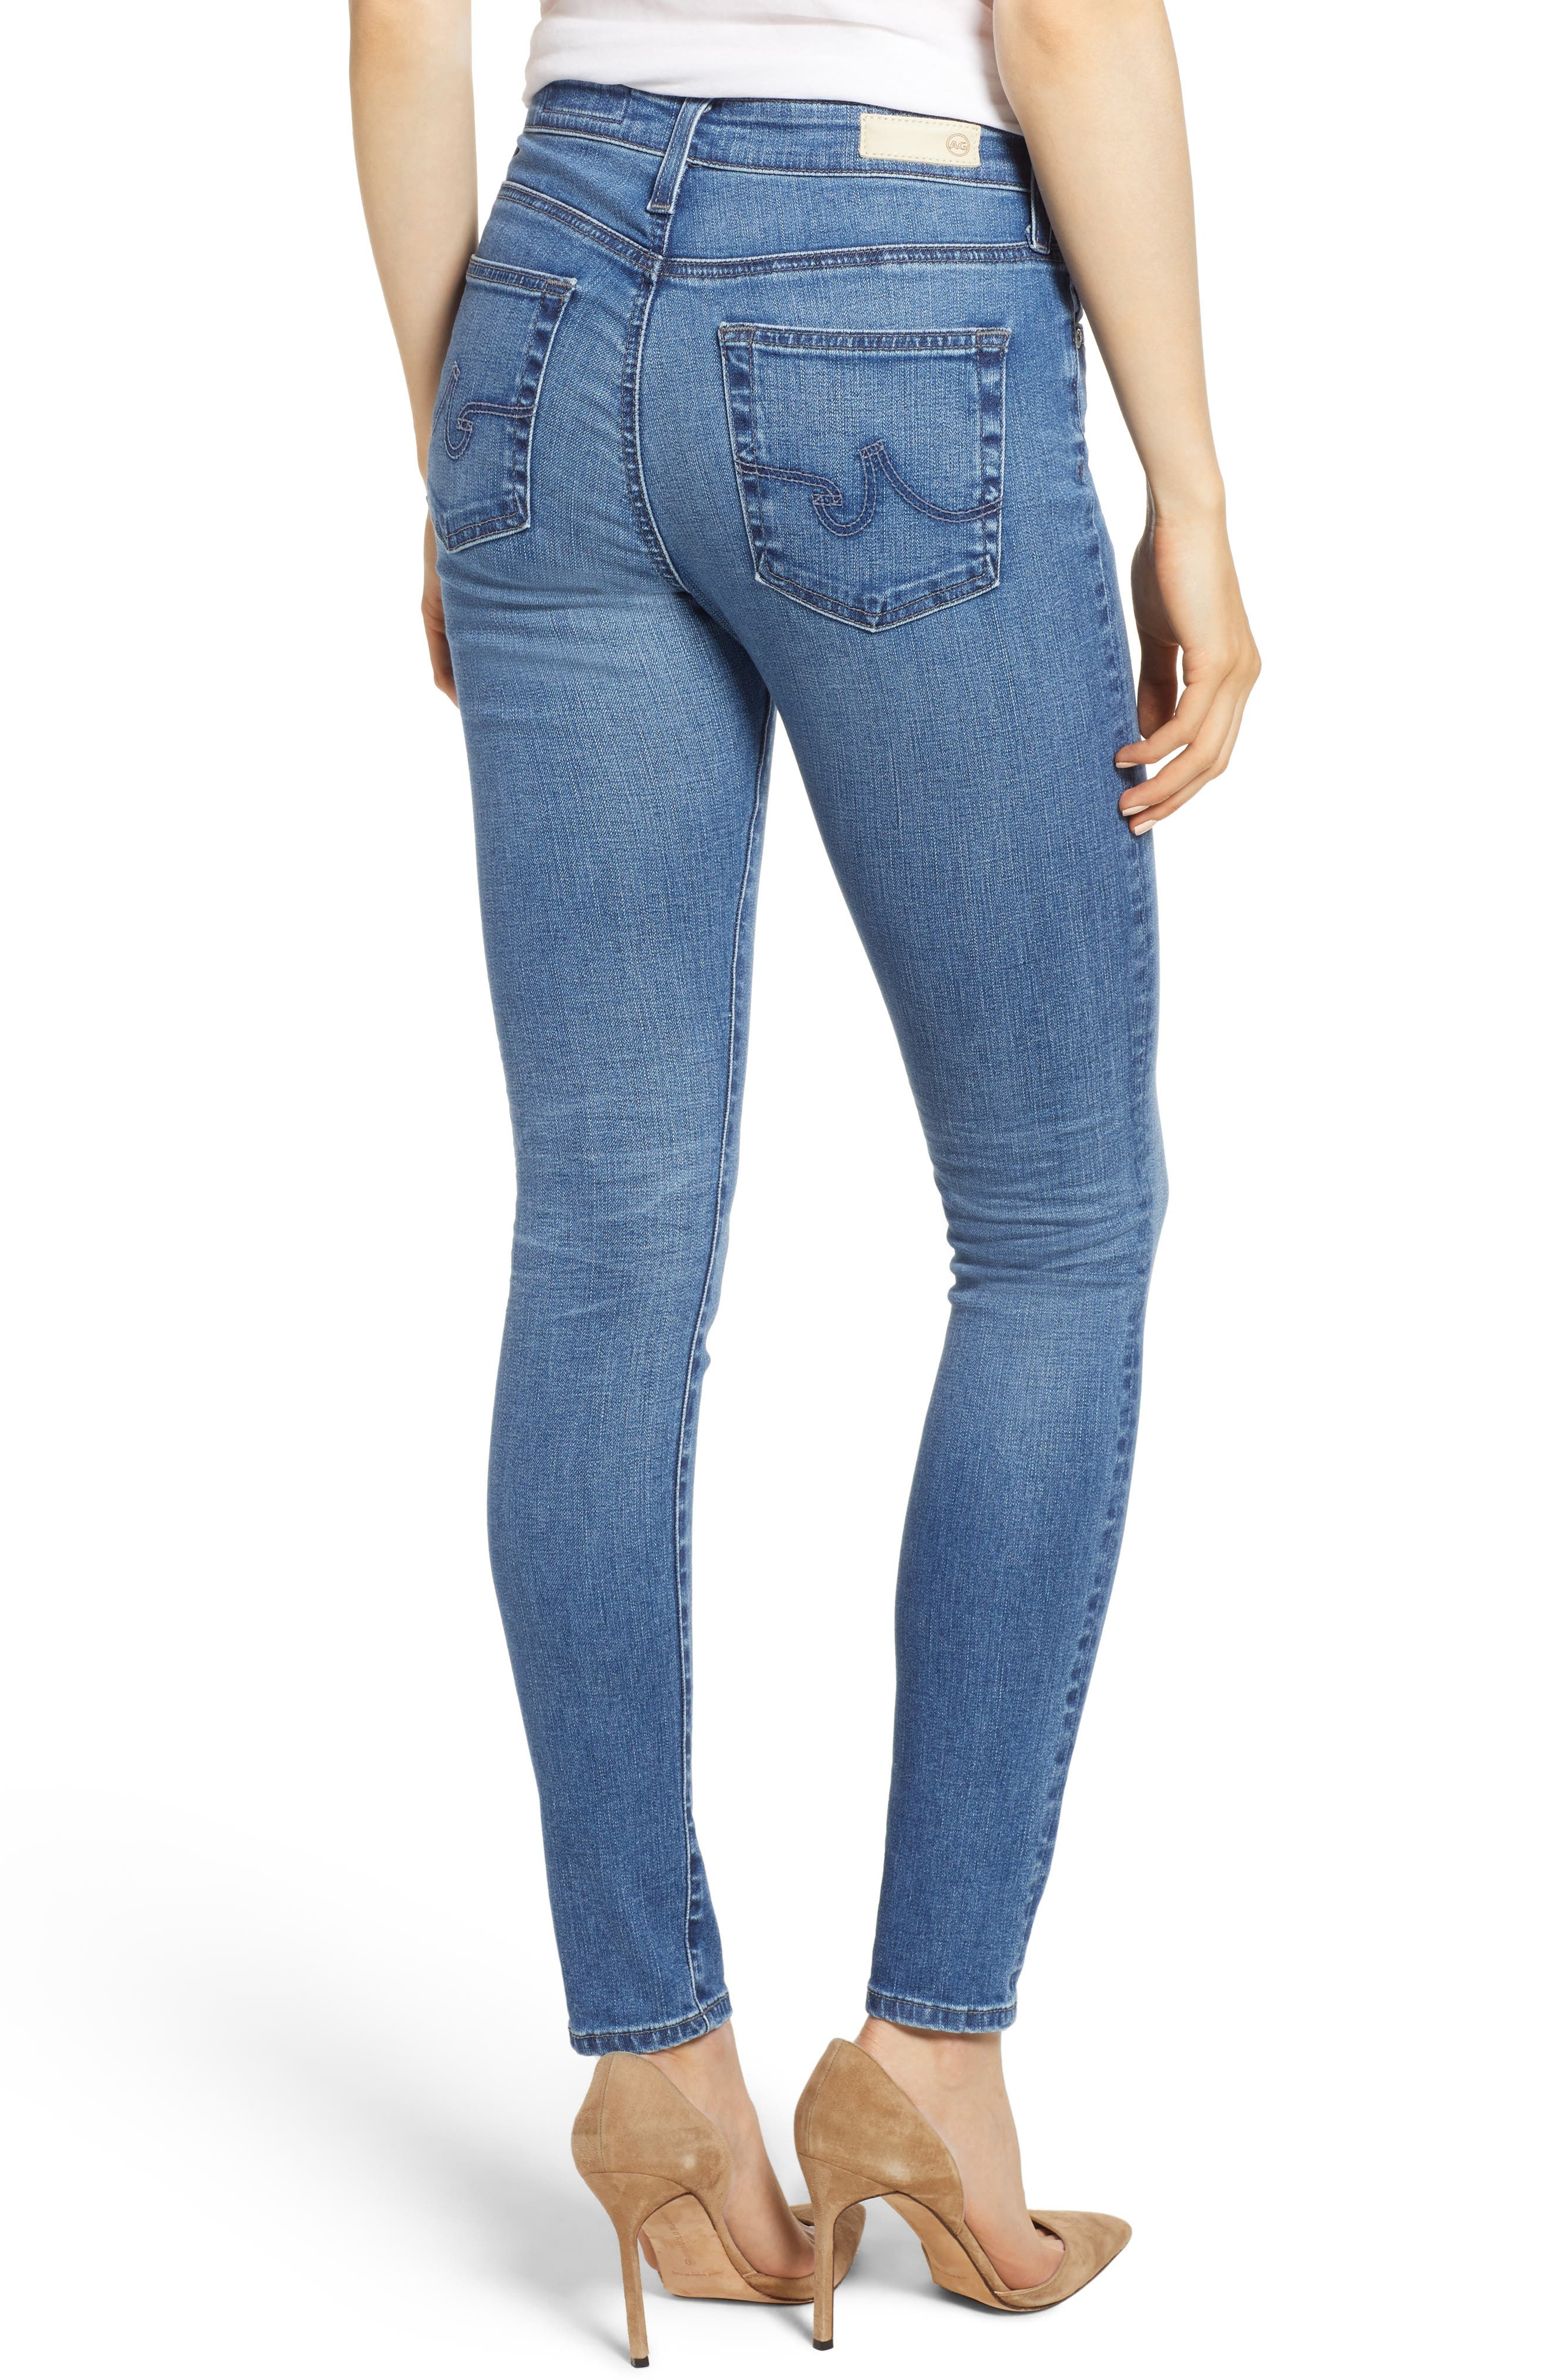 'The Farrah' High Rise Skinny Jeans,                             Alternate thumbnail 2, color,                             15 Years Chronic